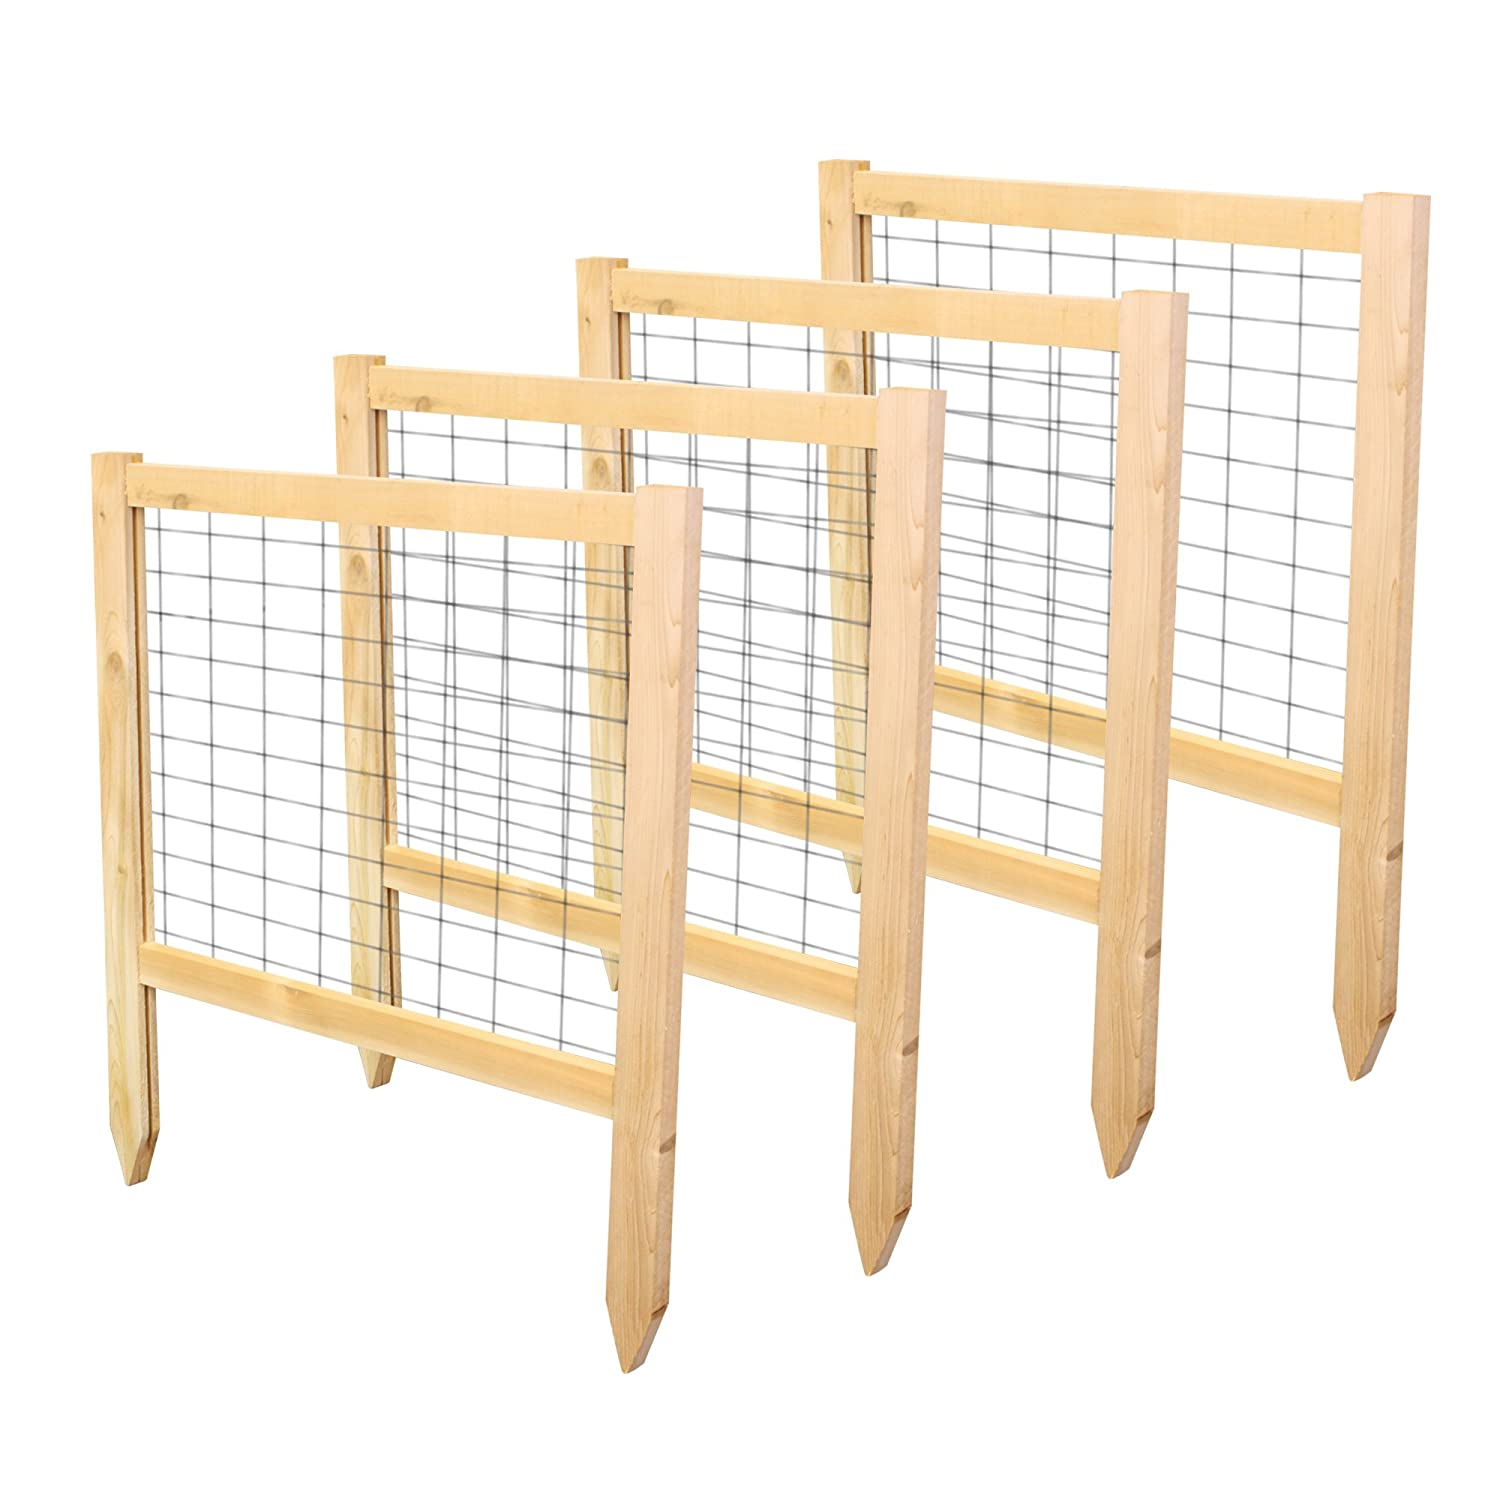 Greenes Fence 2 Critter Guard Cedar Garden Fence 4 Pack , 23.5